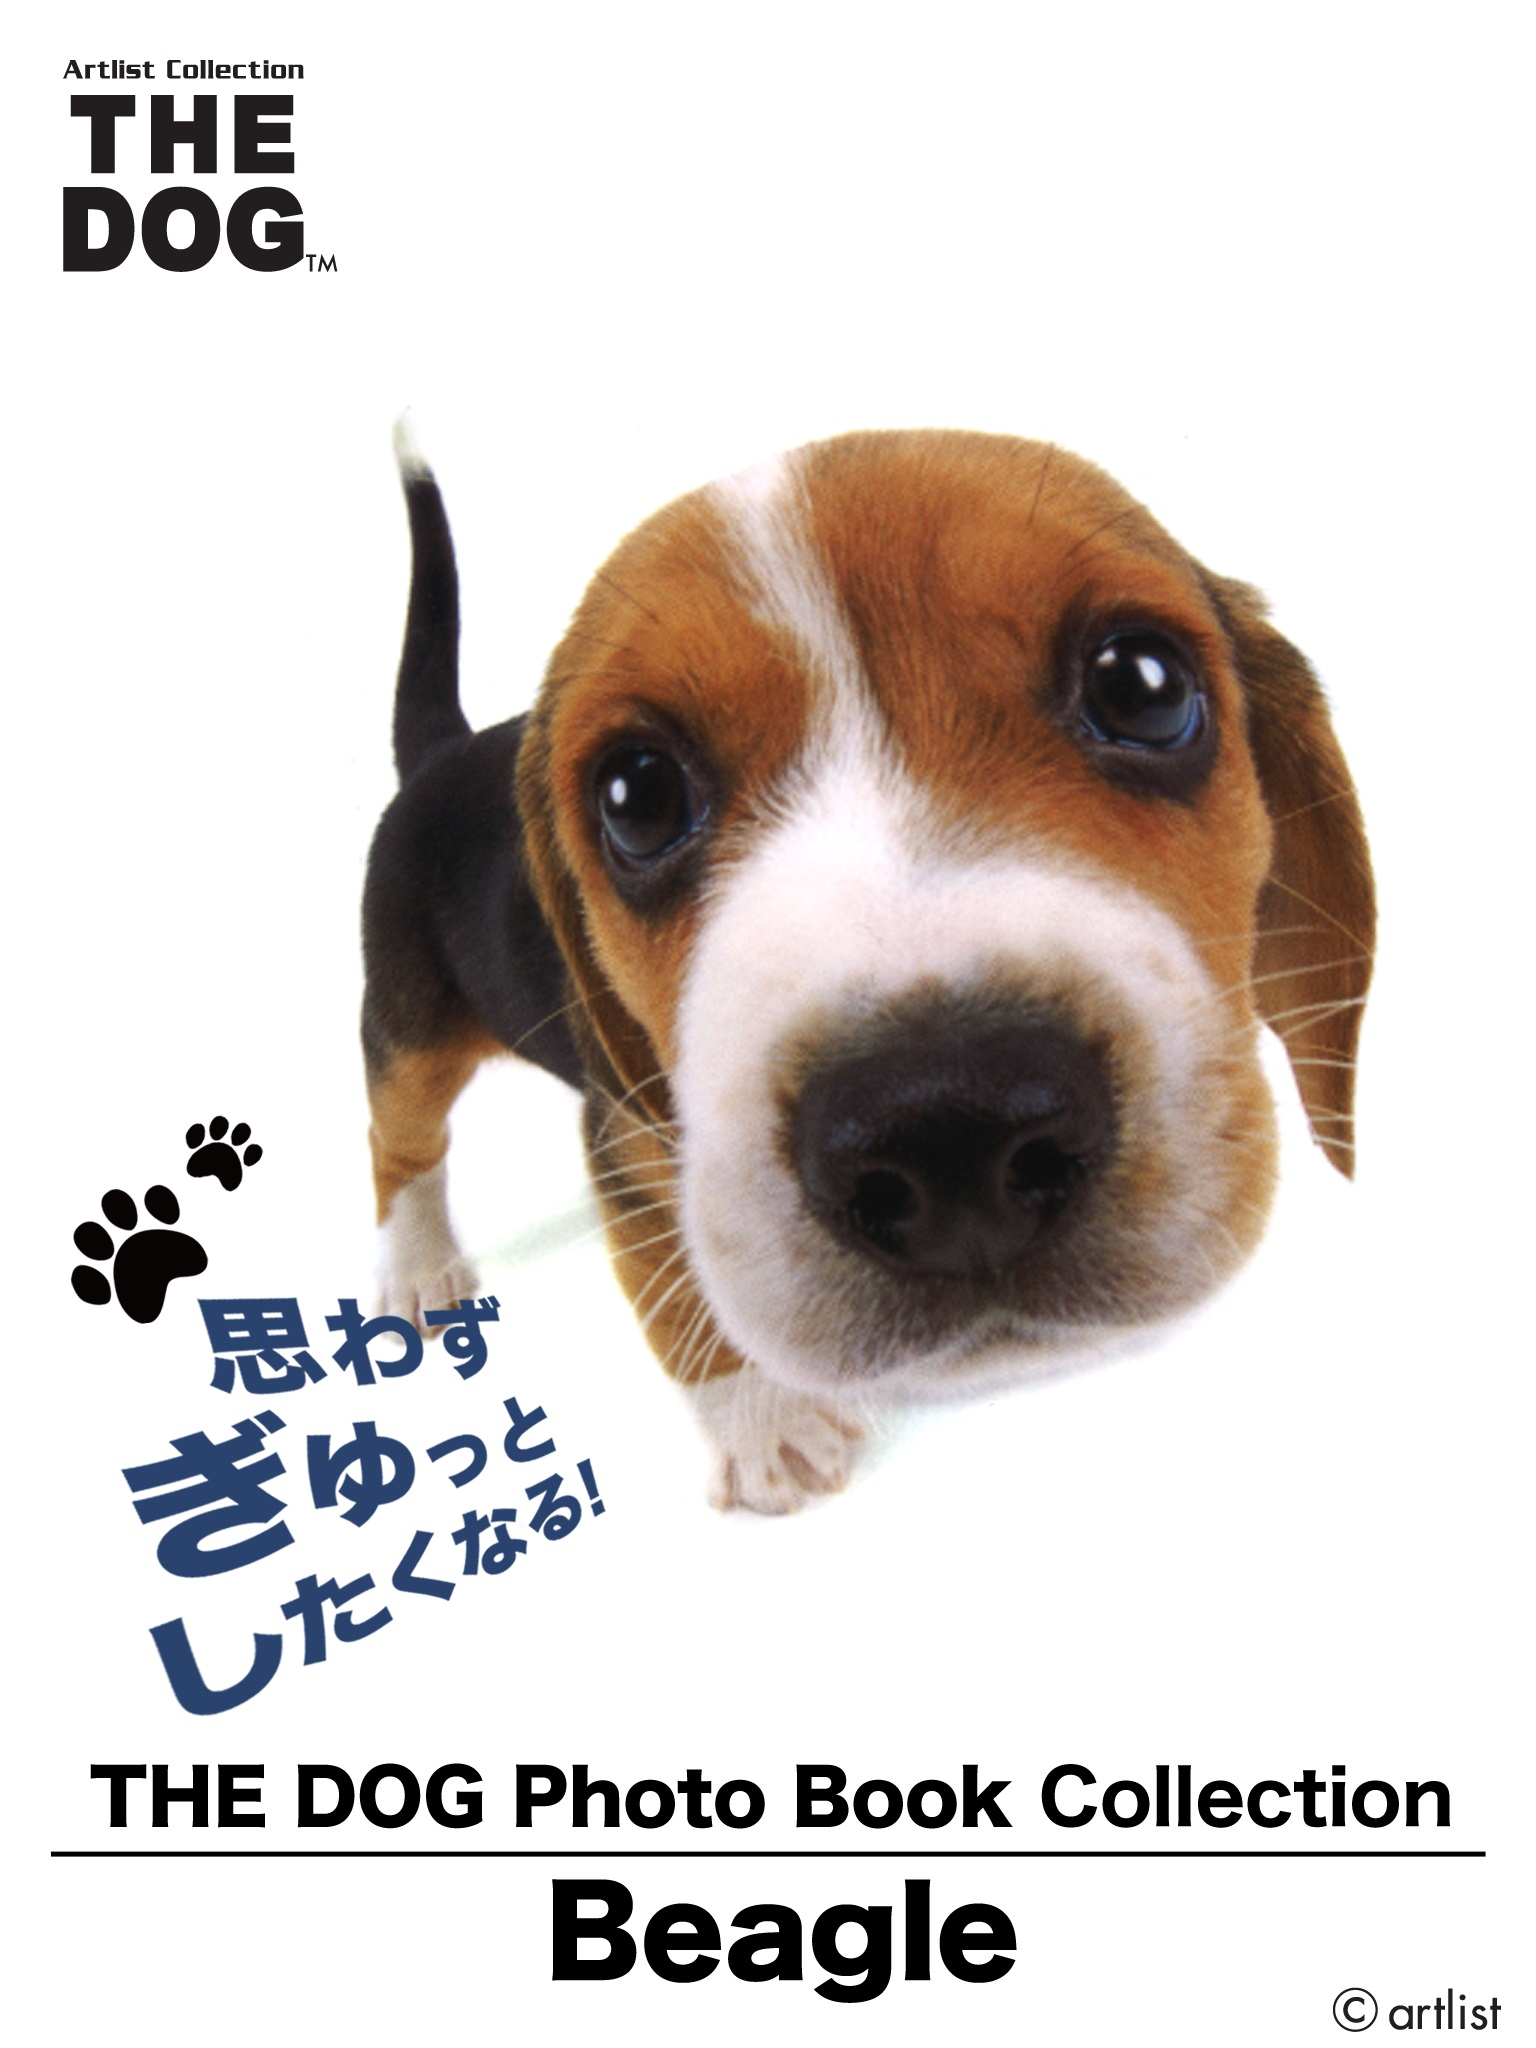 THE DOG Photo Book Collection Beagle